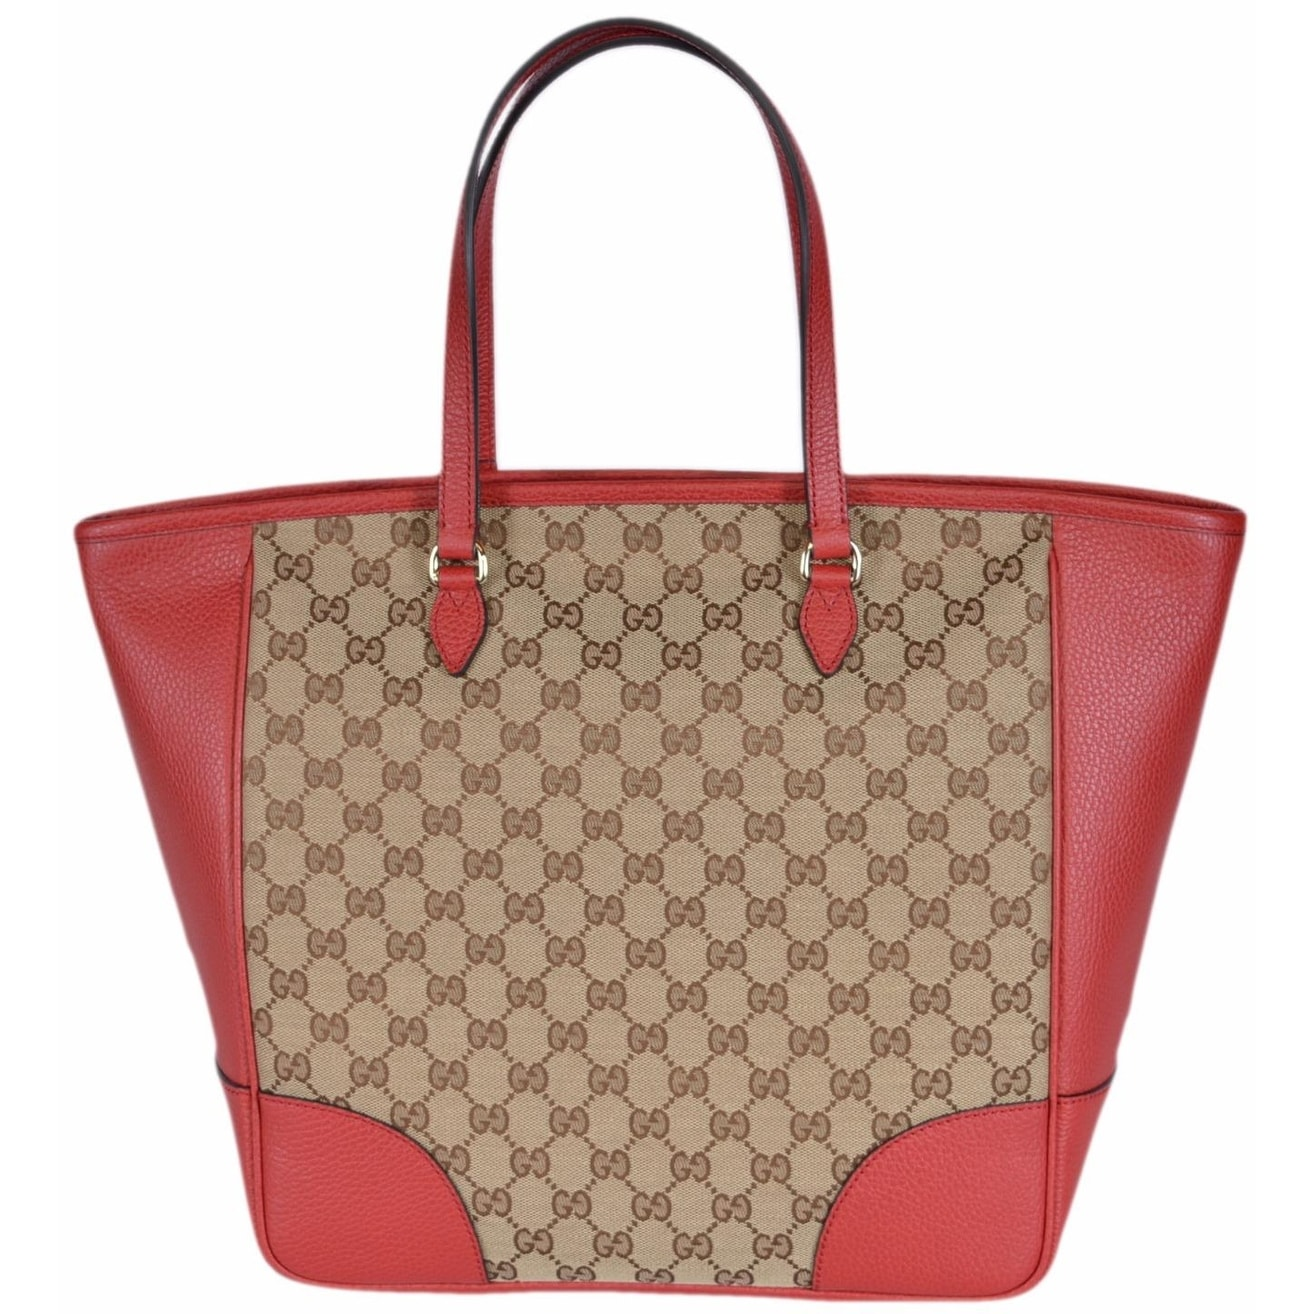 7511151f999 Gucci Women s 449242 Beige Red Large Bree GG Guccissima Purse Handbag Tote